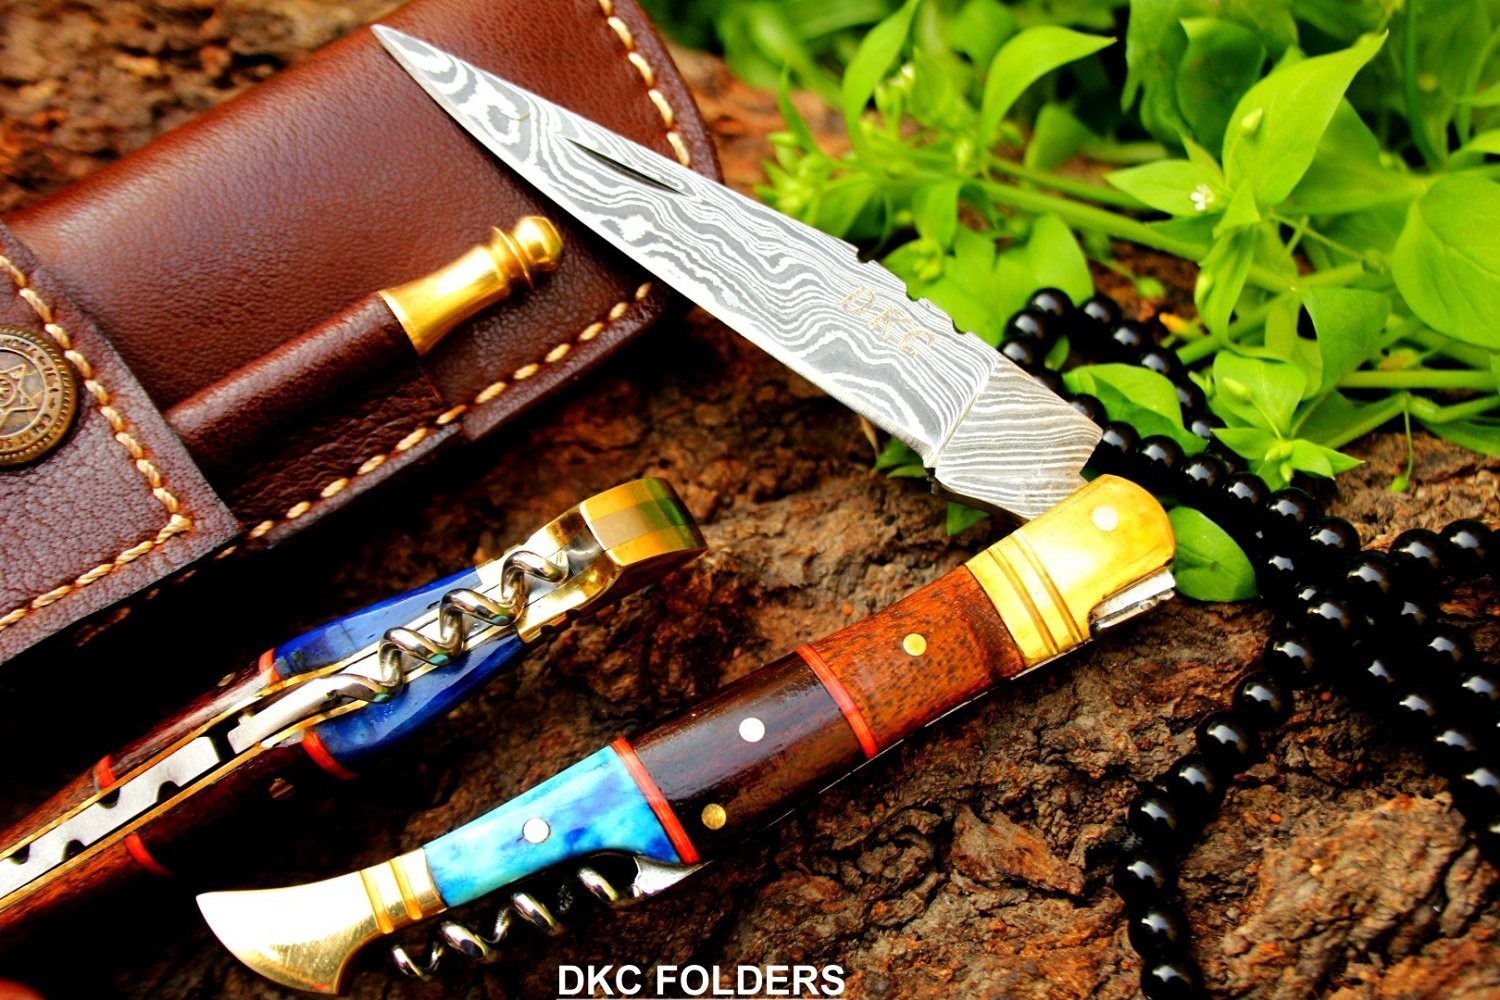 "(18 5/18) SALE DKC-55 BLUE SQUIRE (Brass Bolster) Damascus Steel Pocket Folding Laguiole Style Pocket Knife 4.5"" Folded 8"" Long 2.5oz oz High Class Looks Incredible Hand Made DKC Knives"